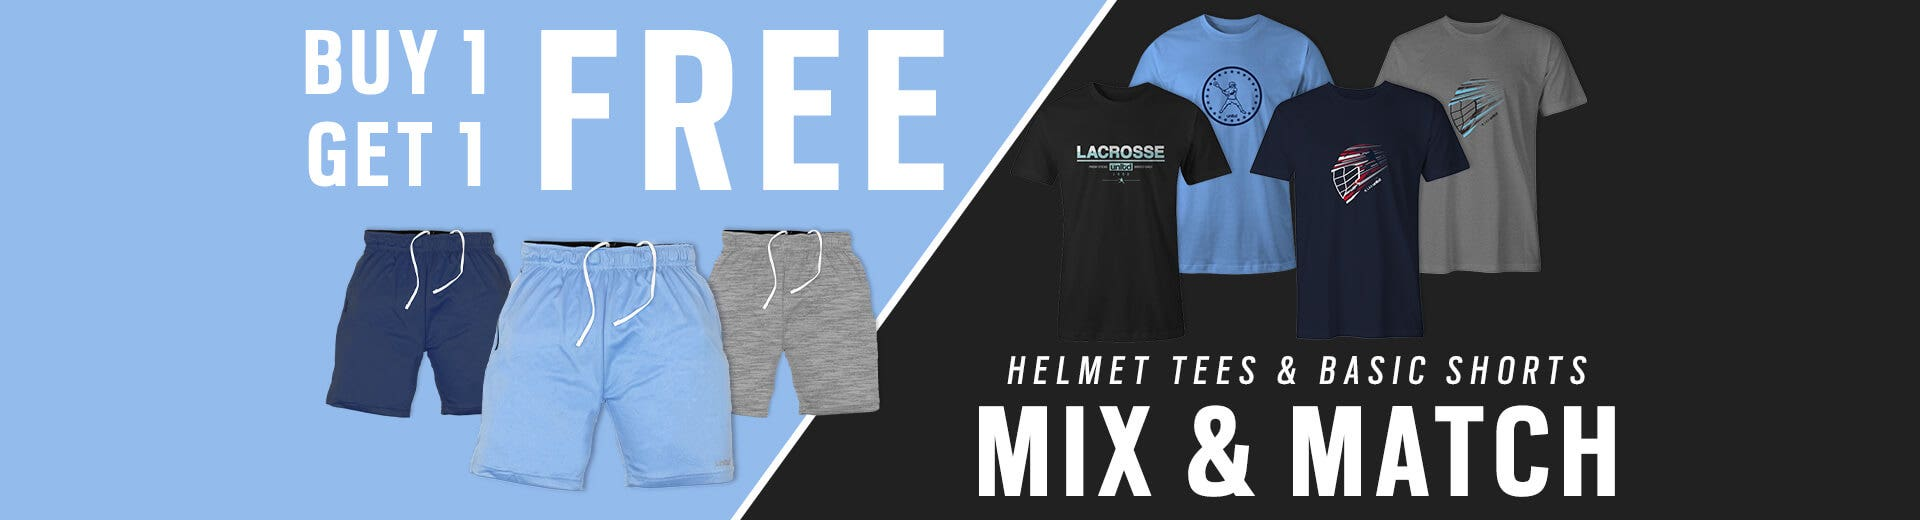 BOGO Free Mix & Match - DESKTOP